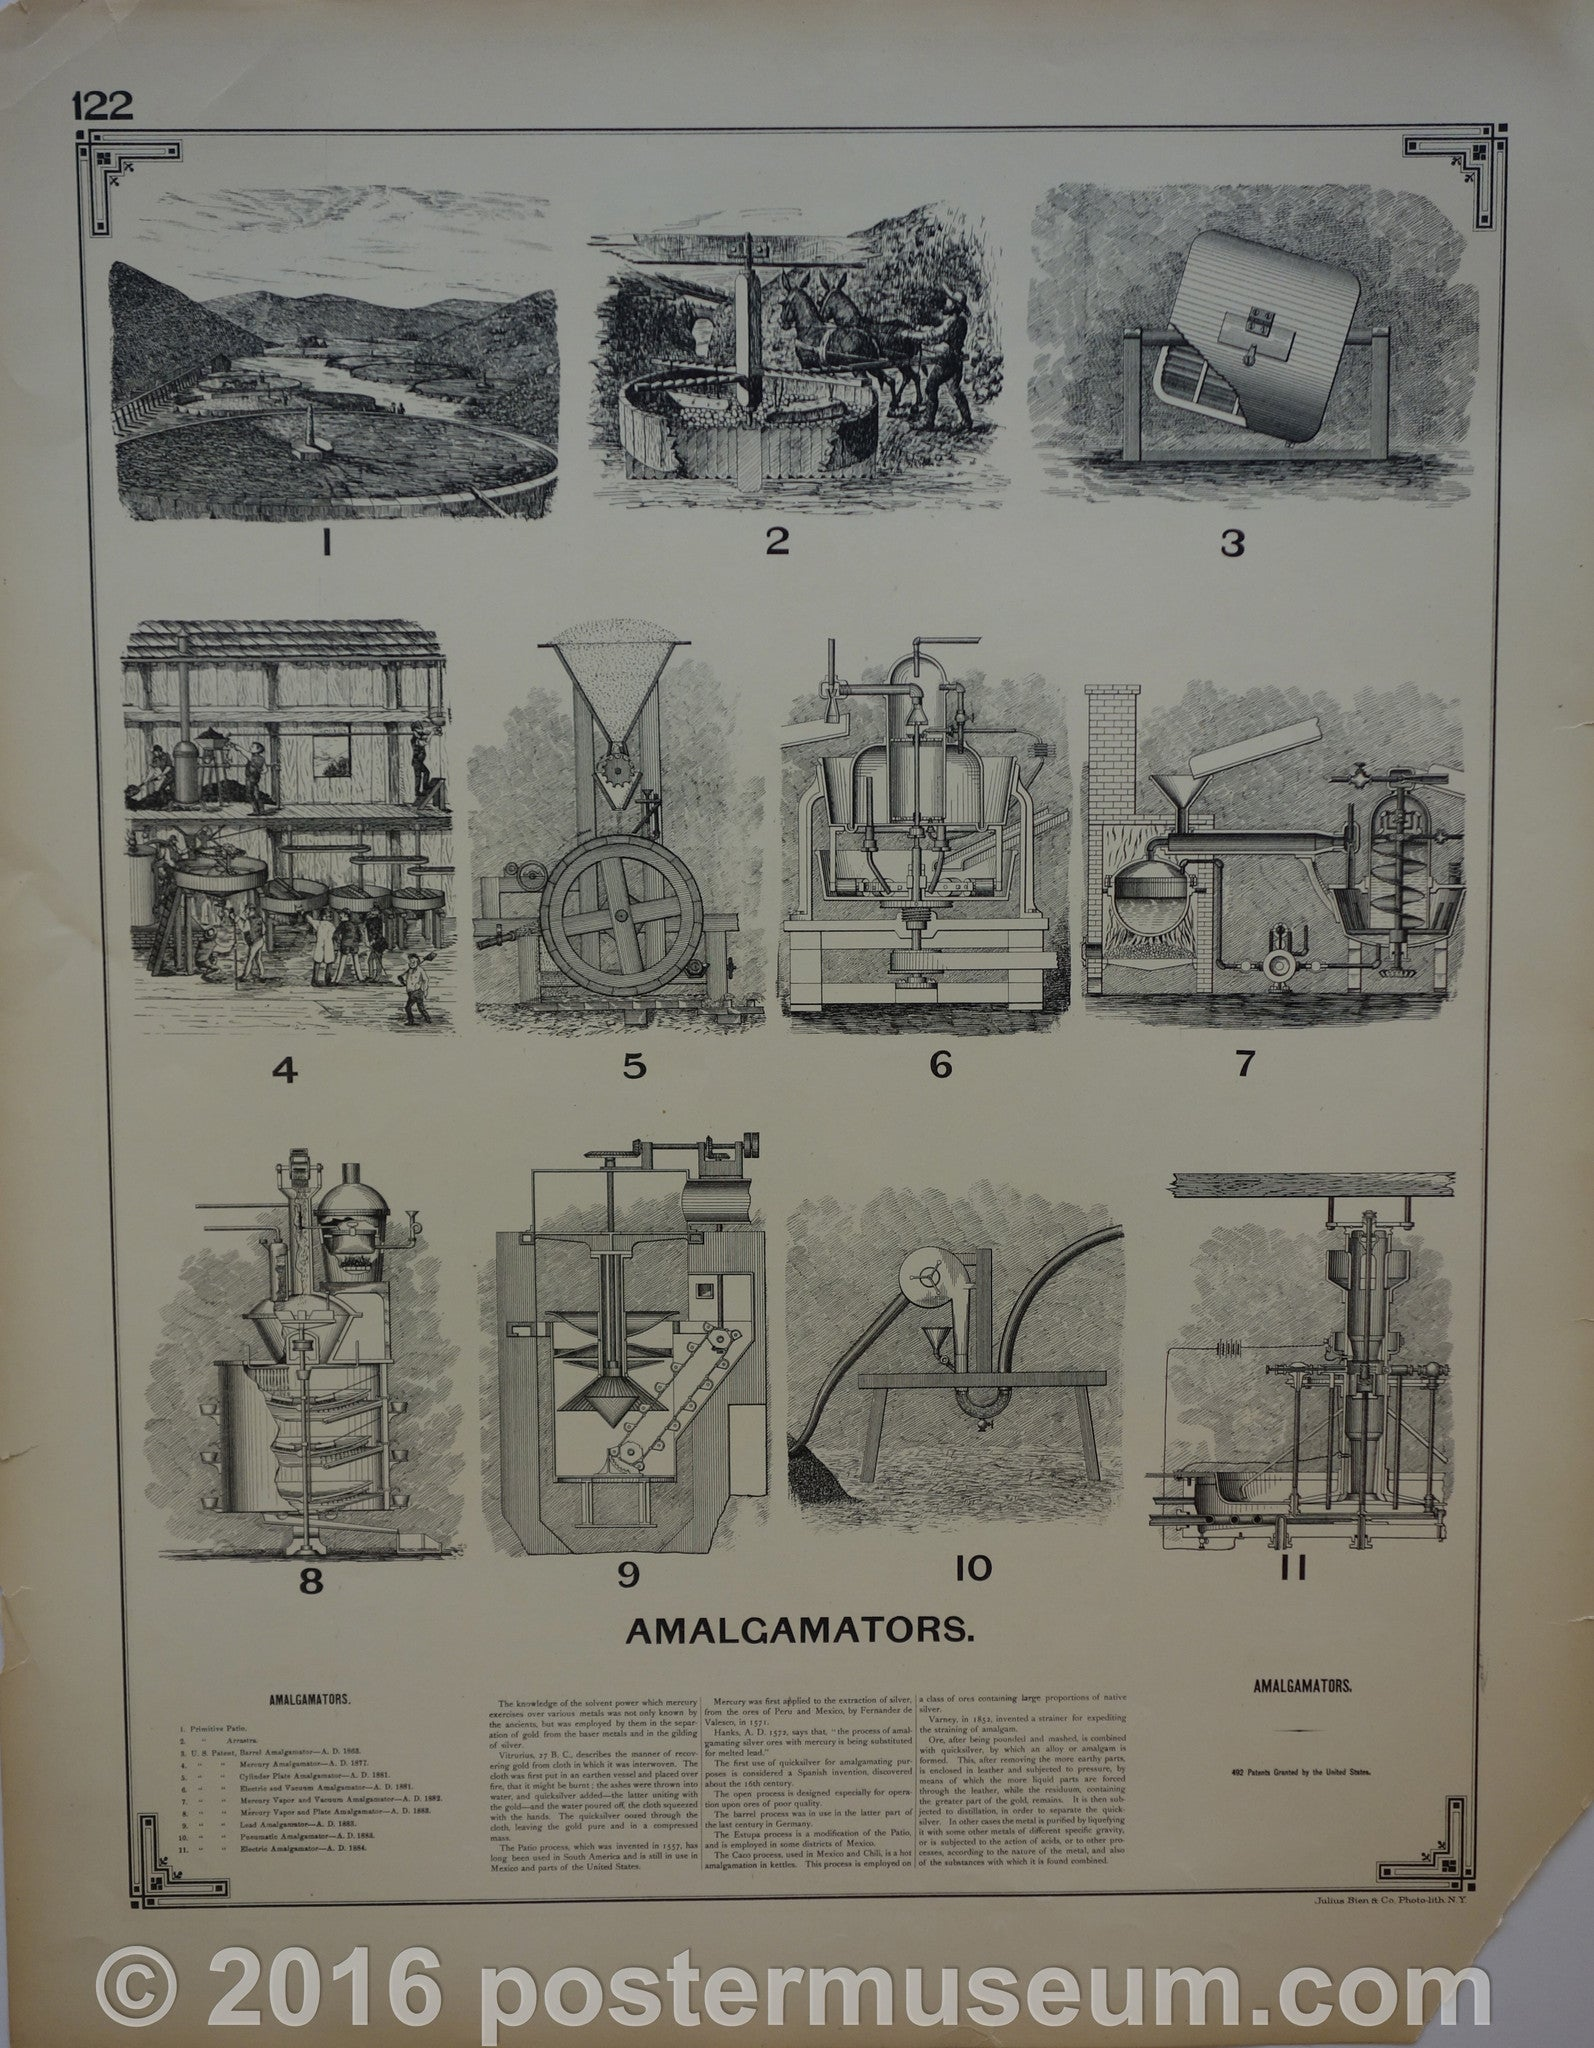 Blast furnaces and iron and steel furances